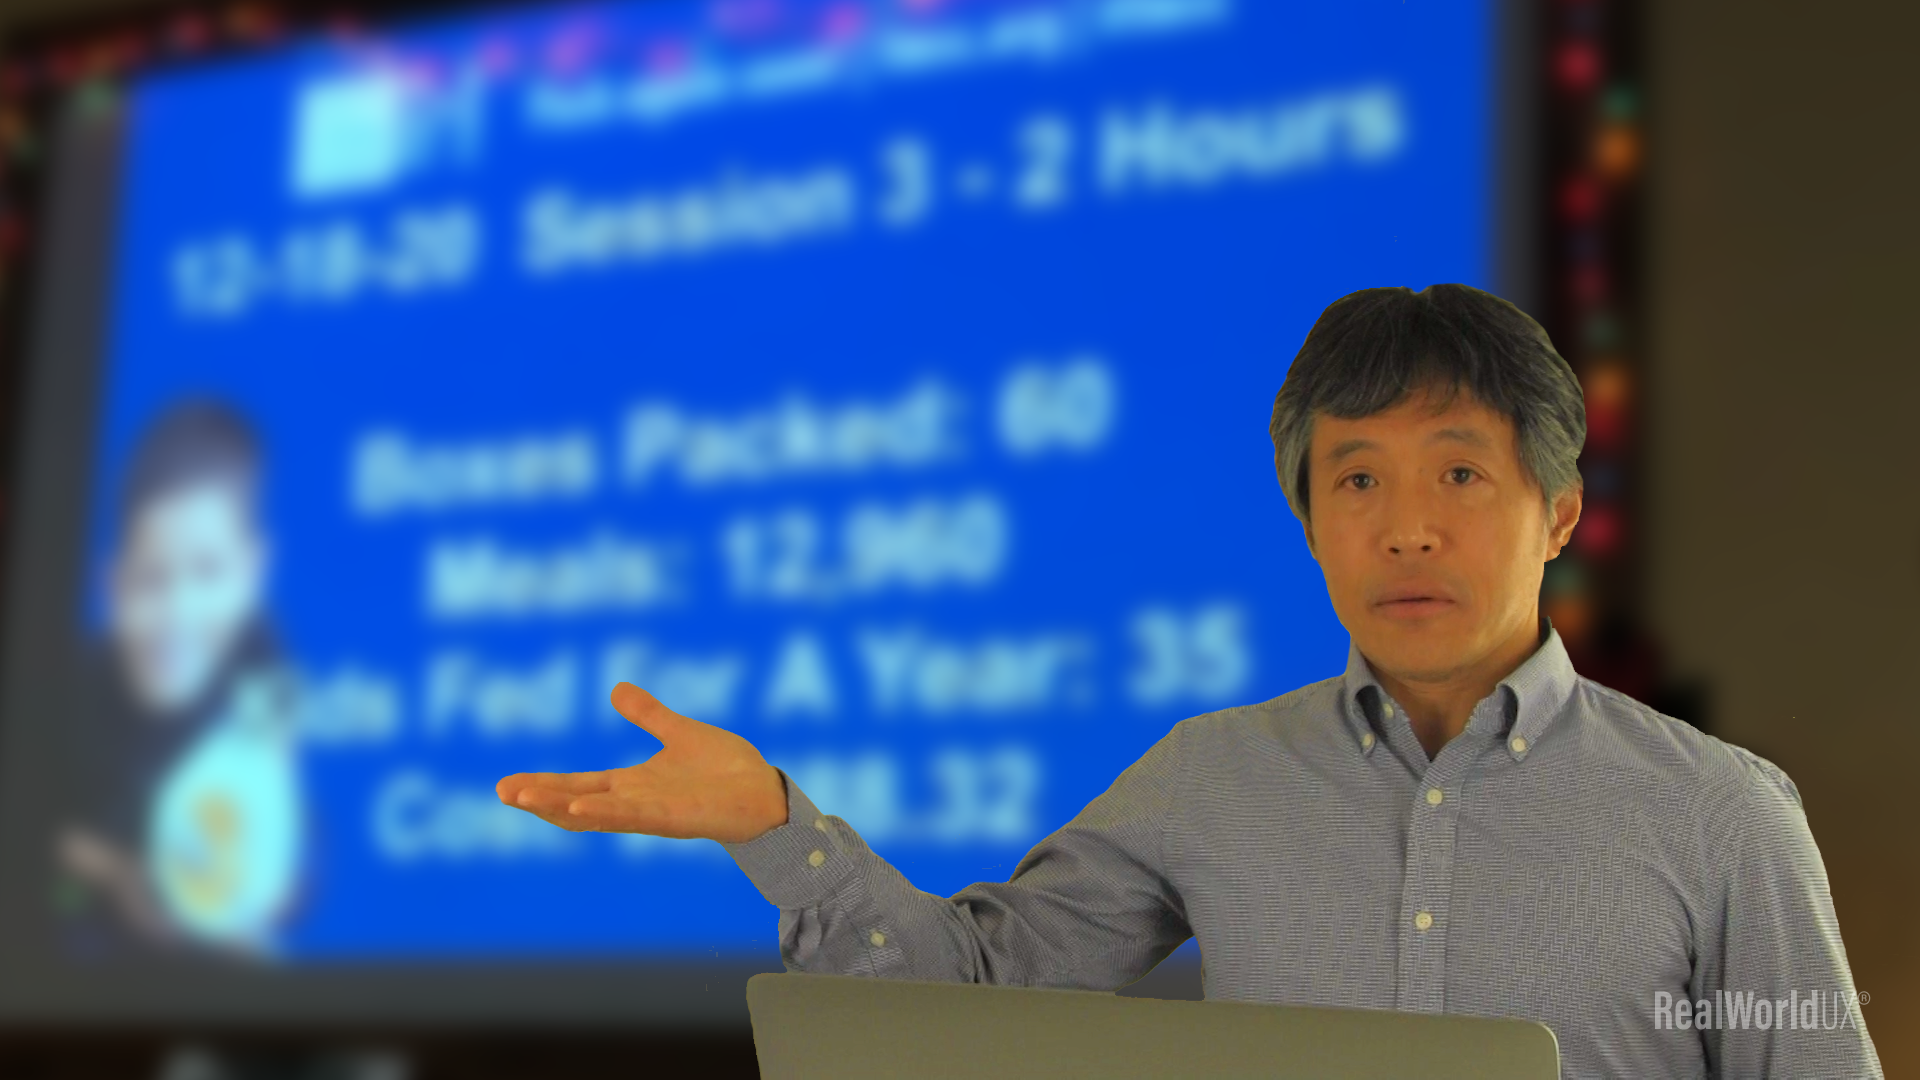 Author in front of a blurred image of a volunteer session result presentation screen